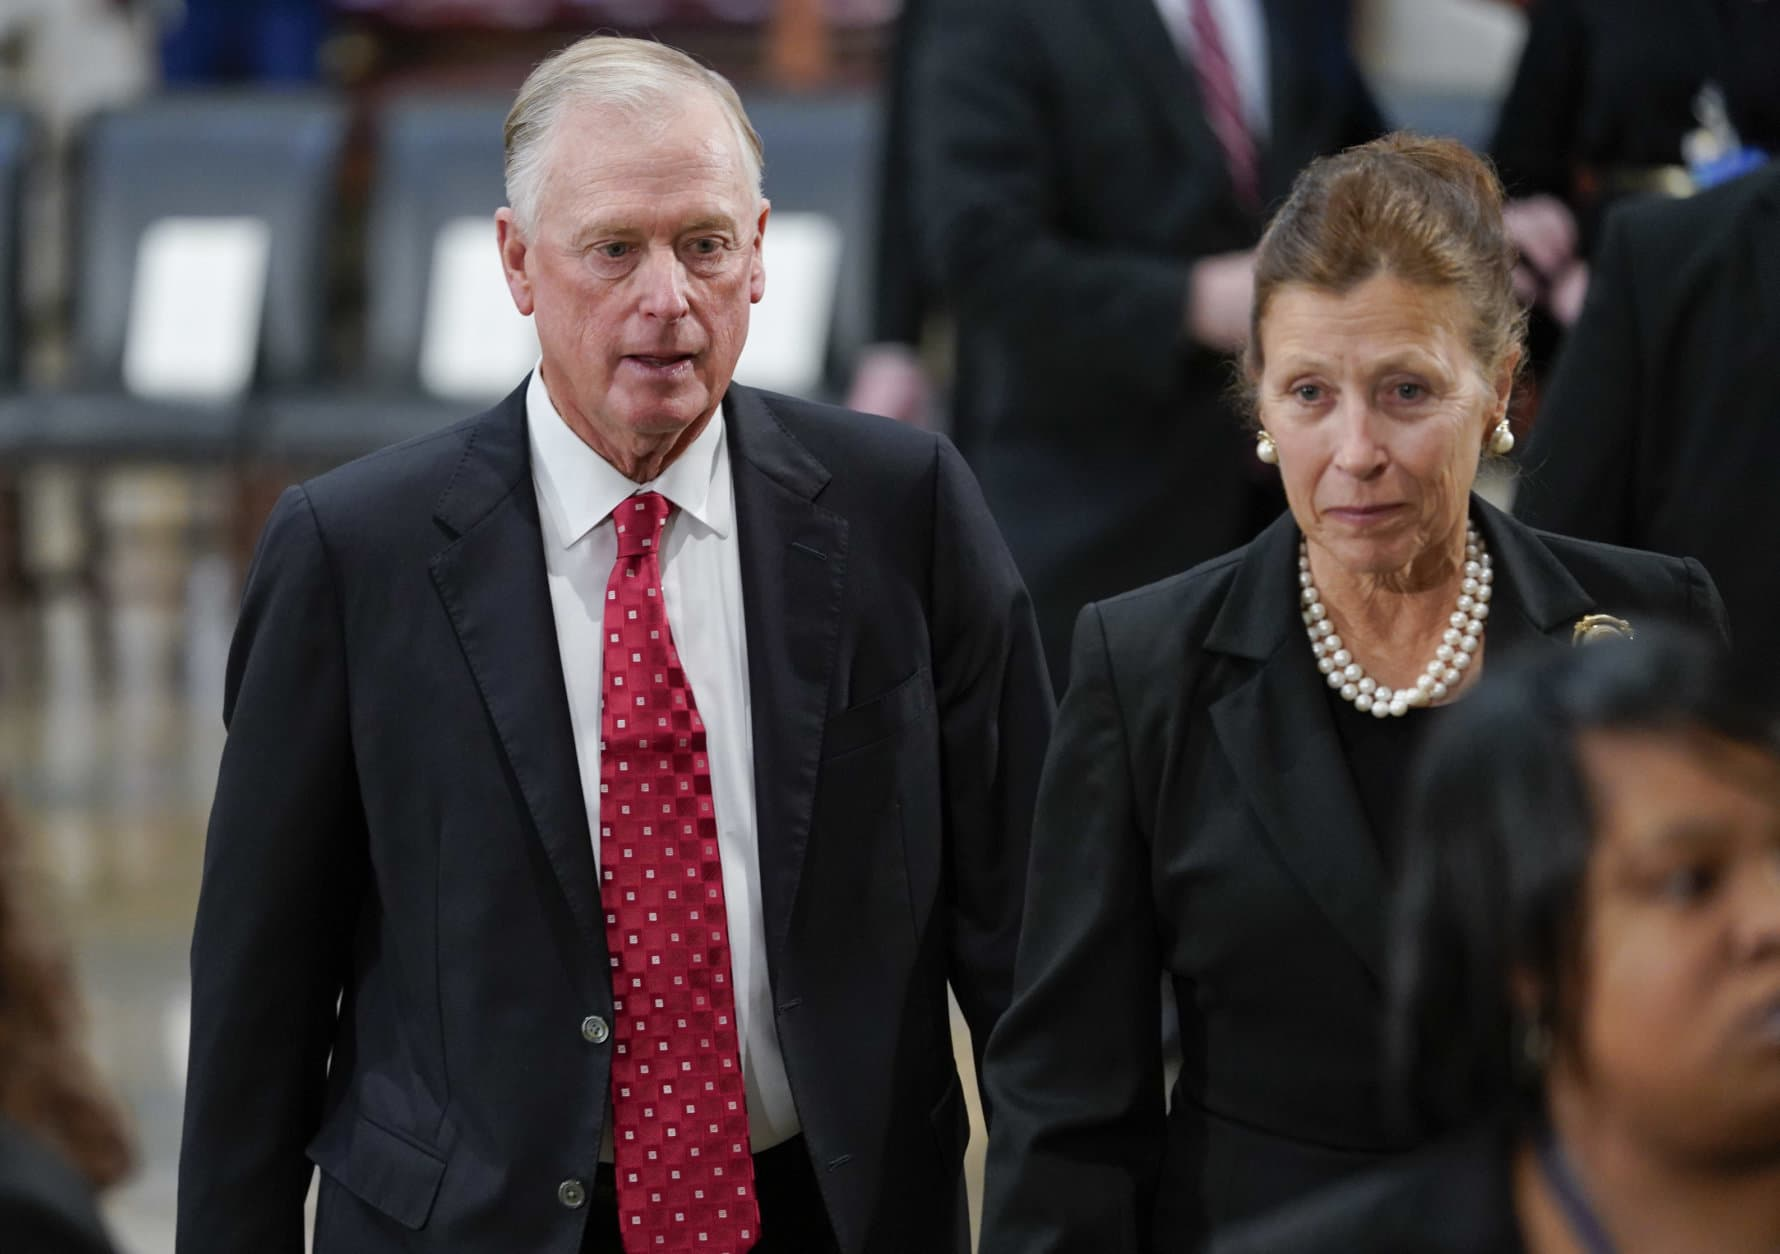 Former Vice Presidents Dan Quayle, left, and his wife Marilyn, right, arrive at the Capitol in Washington to attend services of former President George H.W. Bush, Monday, Dec. 3, 2018. (AP Photo/Pablo Martinez Monsivais/Pool)